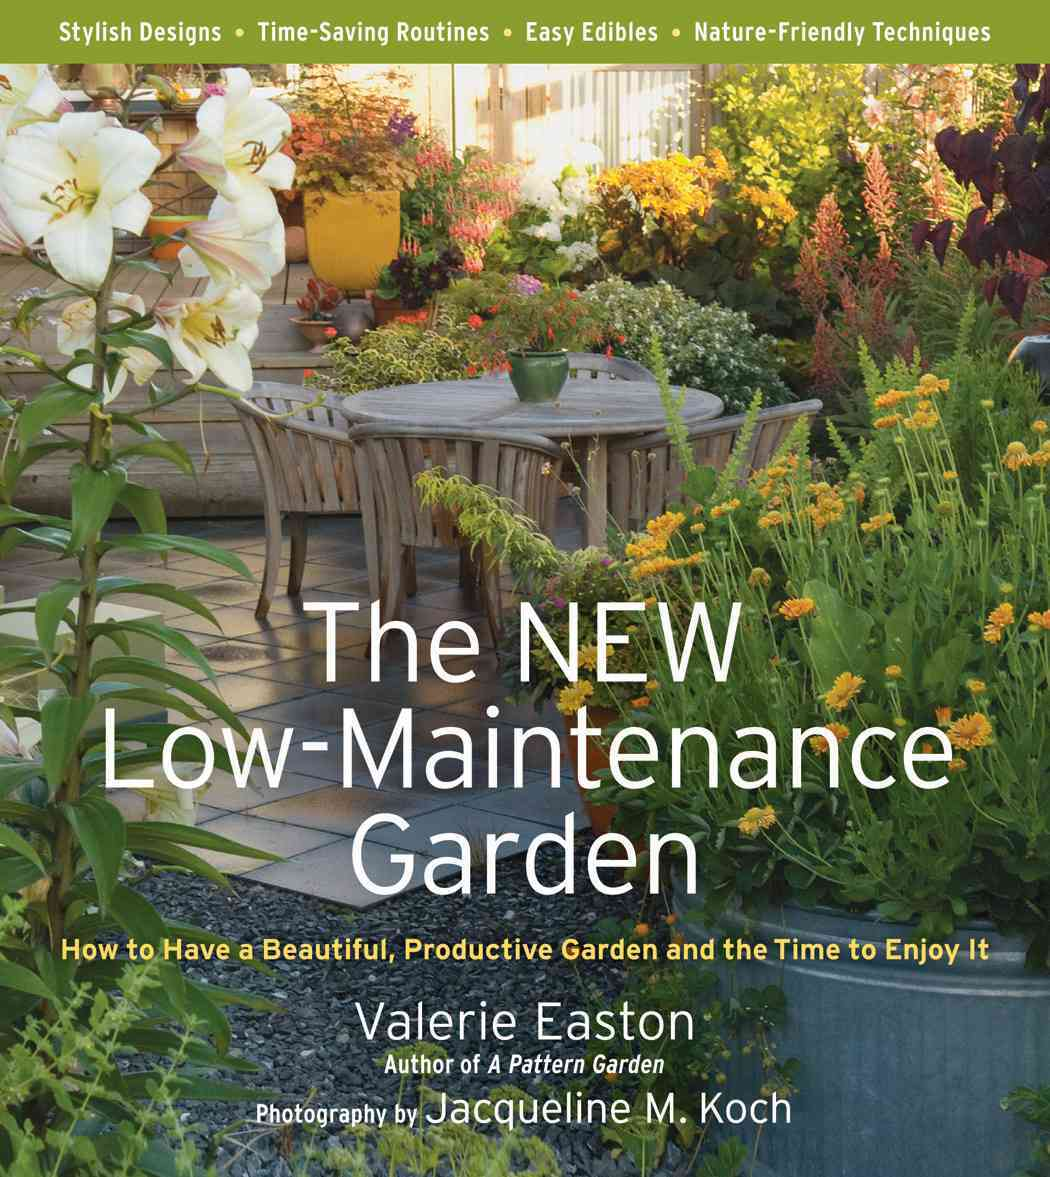 The NEW Low-Maintenance Garden: How to Have a Beautiful, Productive Garden and the Time to Enjoy It (Paperback)